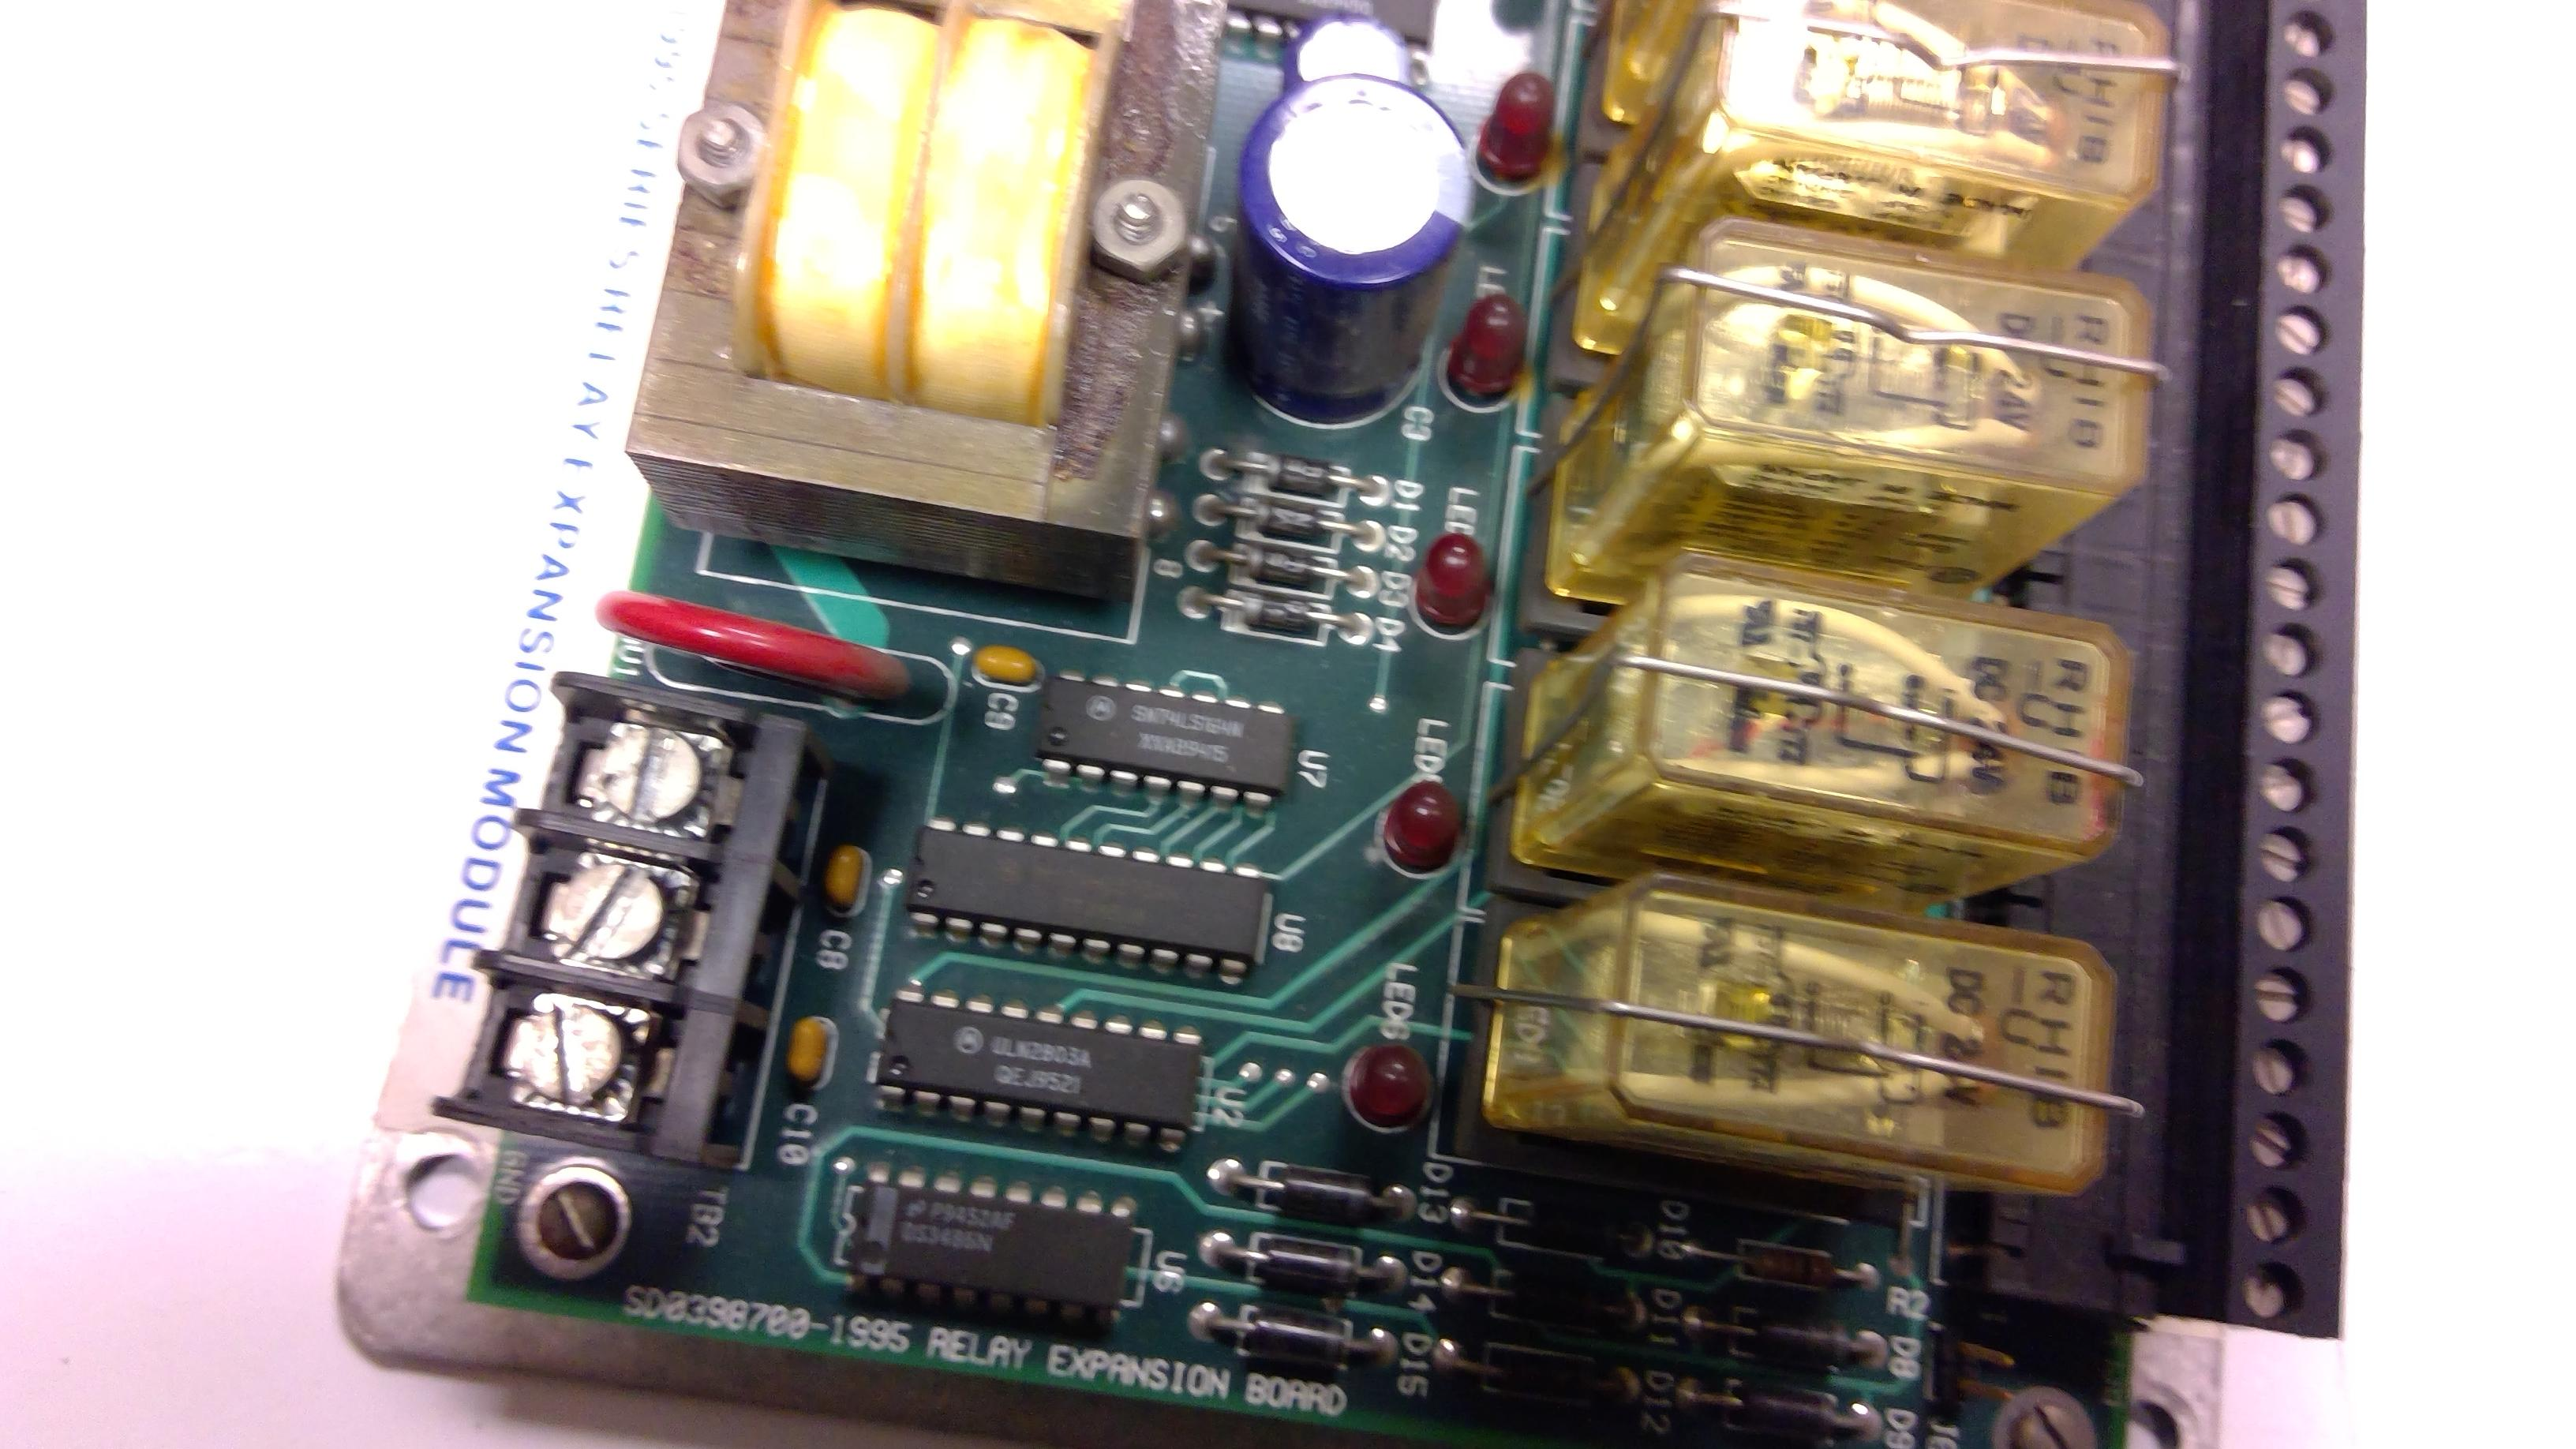 GEMCO SD0398700-1995 RELAY EXPANSION BOARD